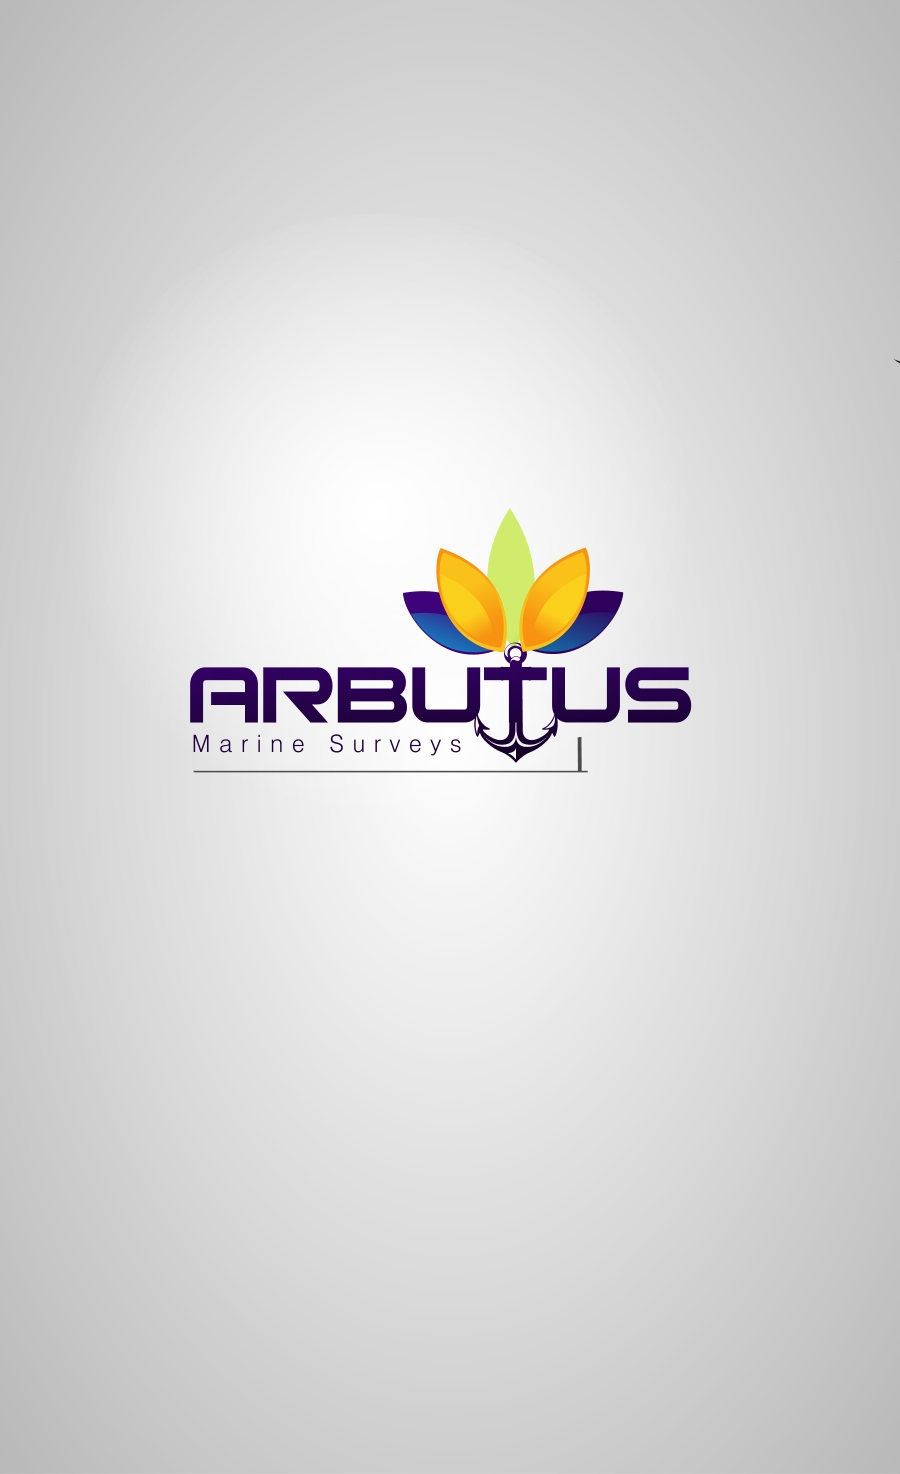 Logo Design by Private User - Entry No. 34 in the Logo Design Contest Professional Business Logo Design for Arbutus Marine Surveys.